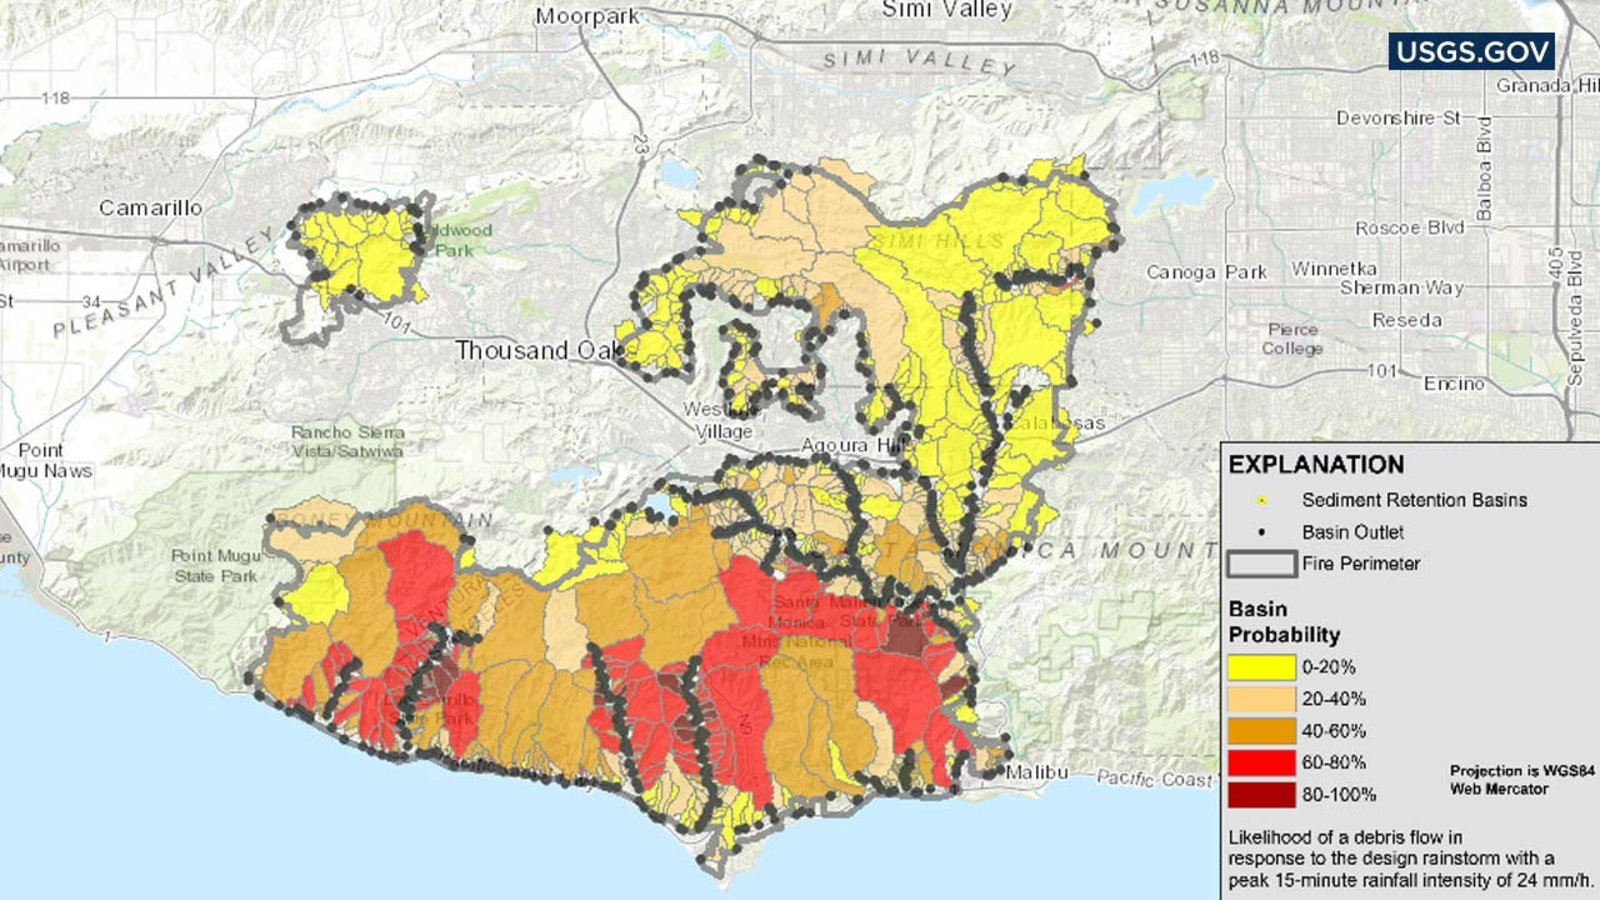 Map depicts mudslide risk in Woolsey Fire area on phoenix map, new york map, san bernardino map, san jose, escondido map, las vegas, oroville map, new york city, california map, anaheim map, new orleans, riverside map, reno nevada map, pacific palisades map, ohio map, hollywood map, long beach, san diego, beverly hills, watts map, san antonio, united states of america, brooklyn map, usa map, la map, mexico city, lax map, chicago map, hollywood sign, santa monica map, united states map, san francisco,